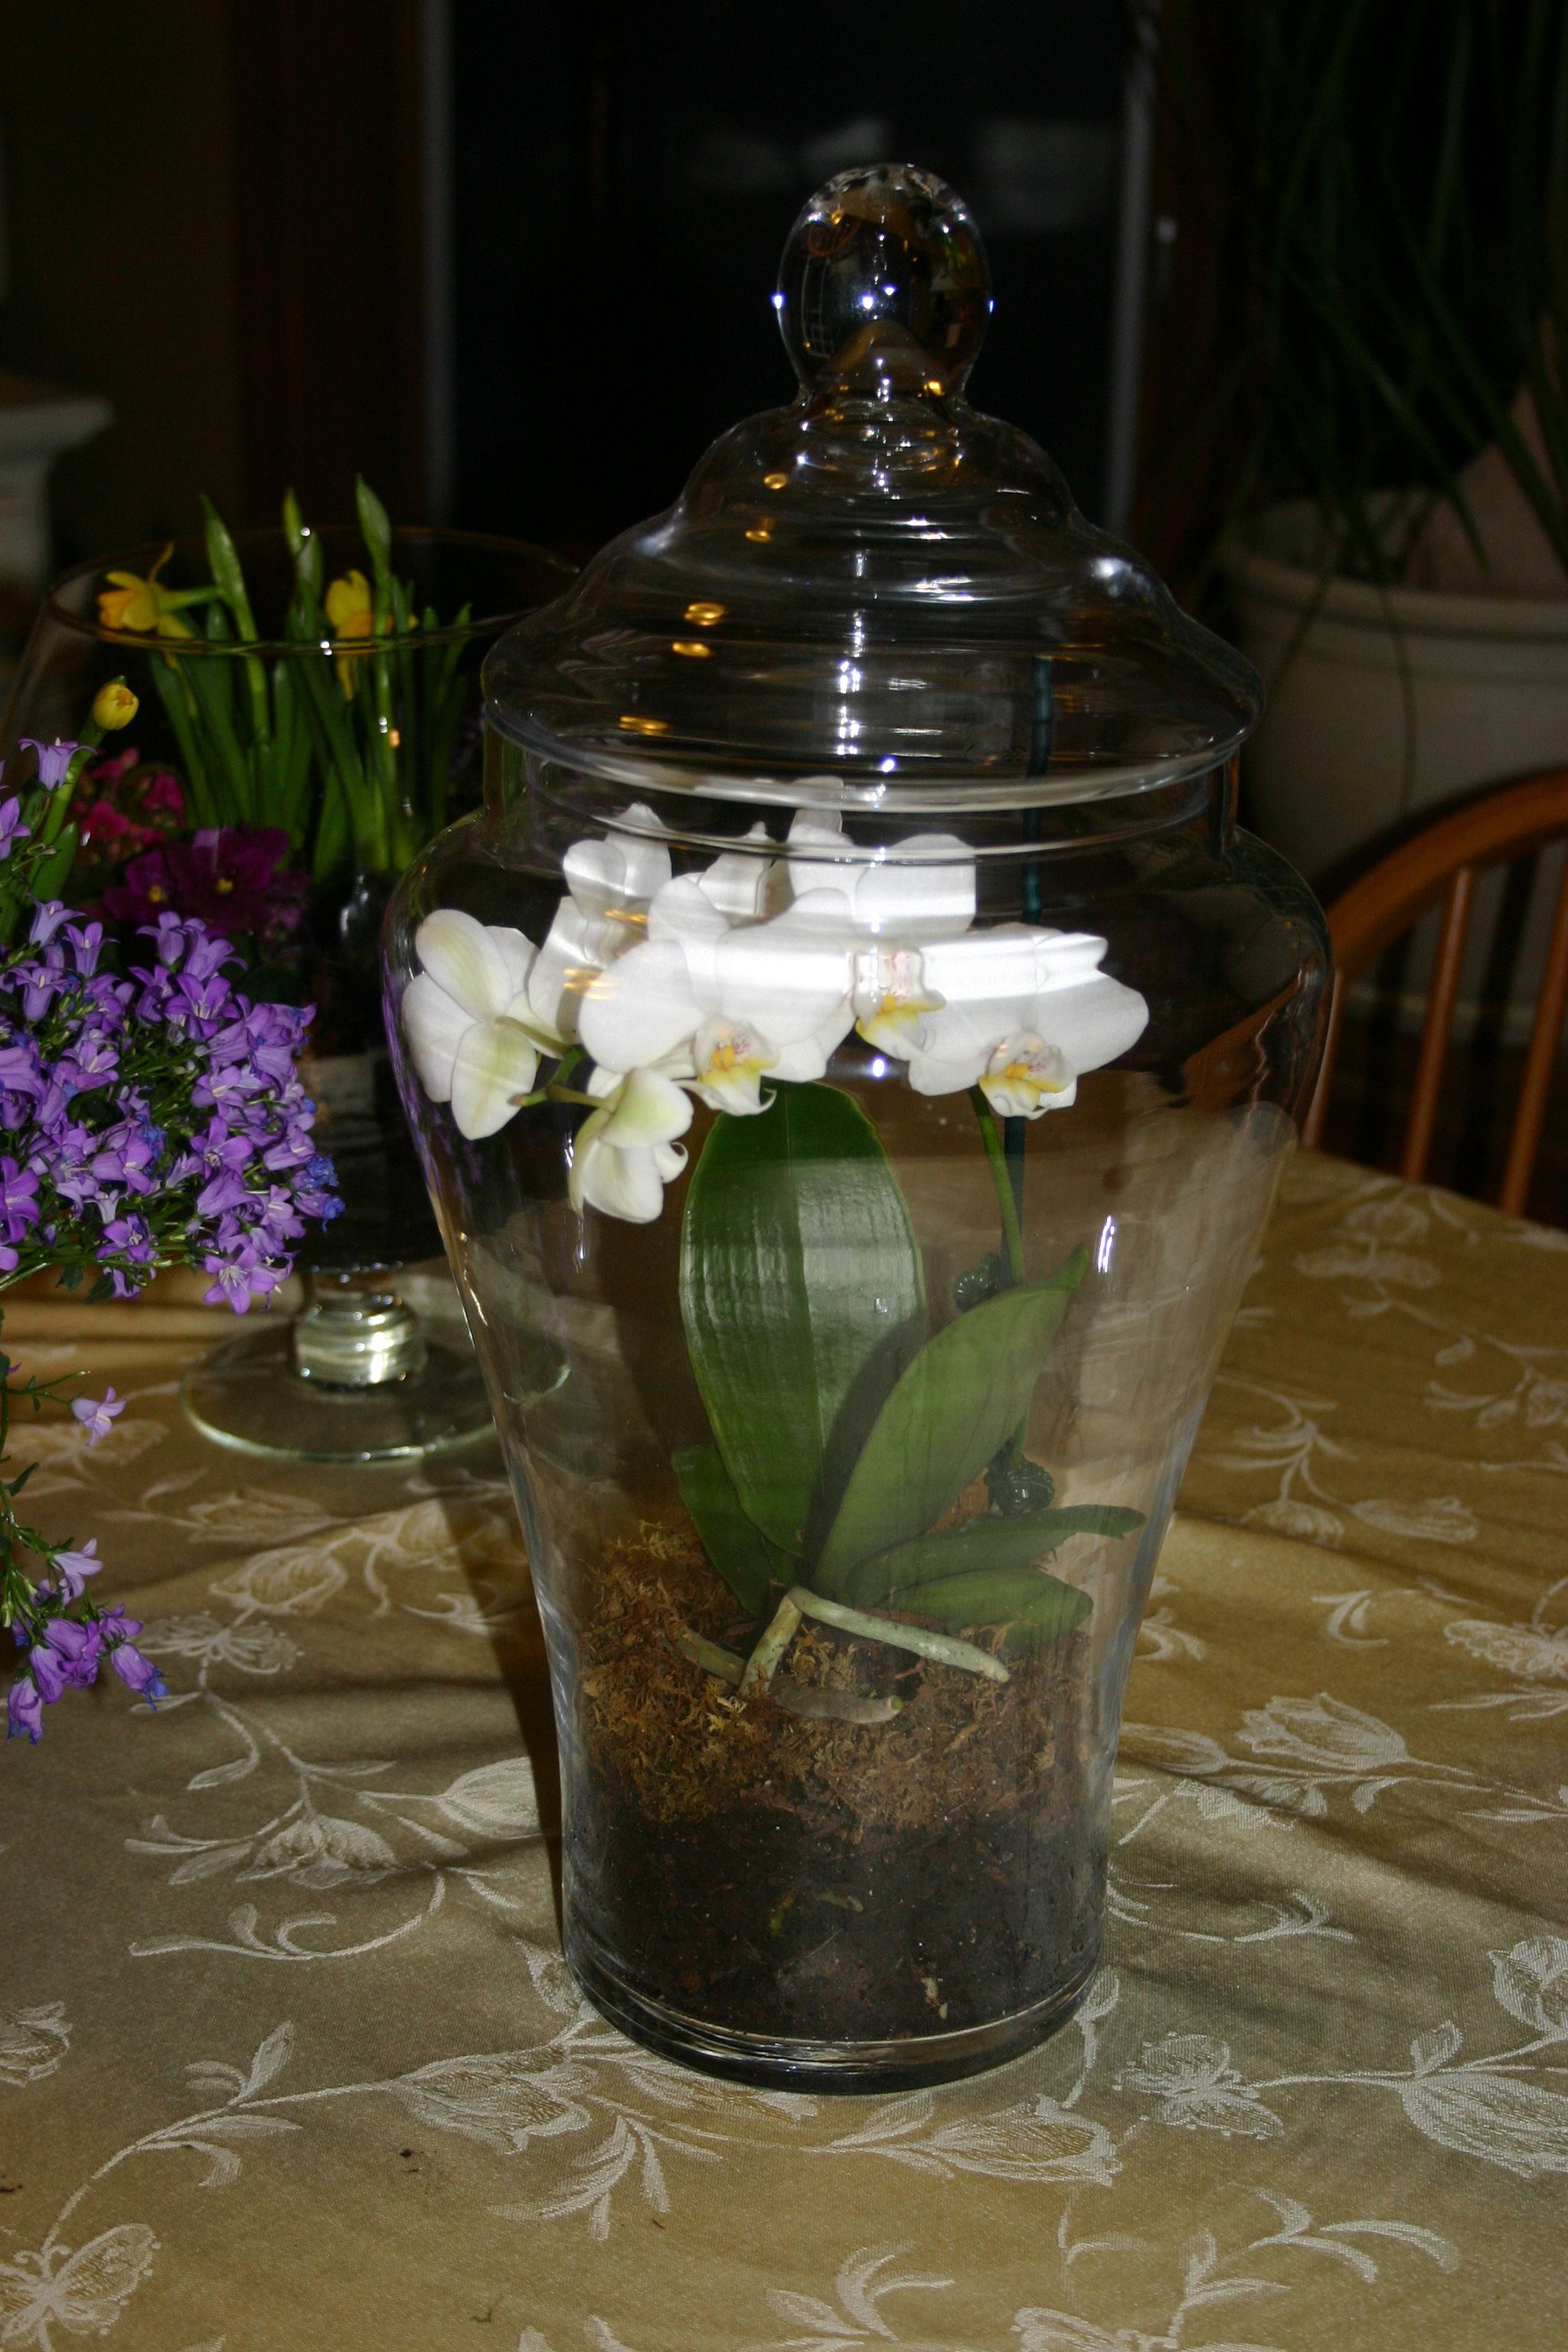 Enclosed Terrarium Idea For Orchids Via Repin Botanical Orchid